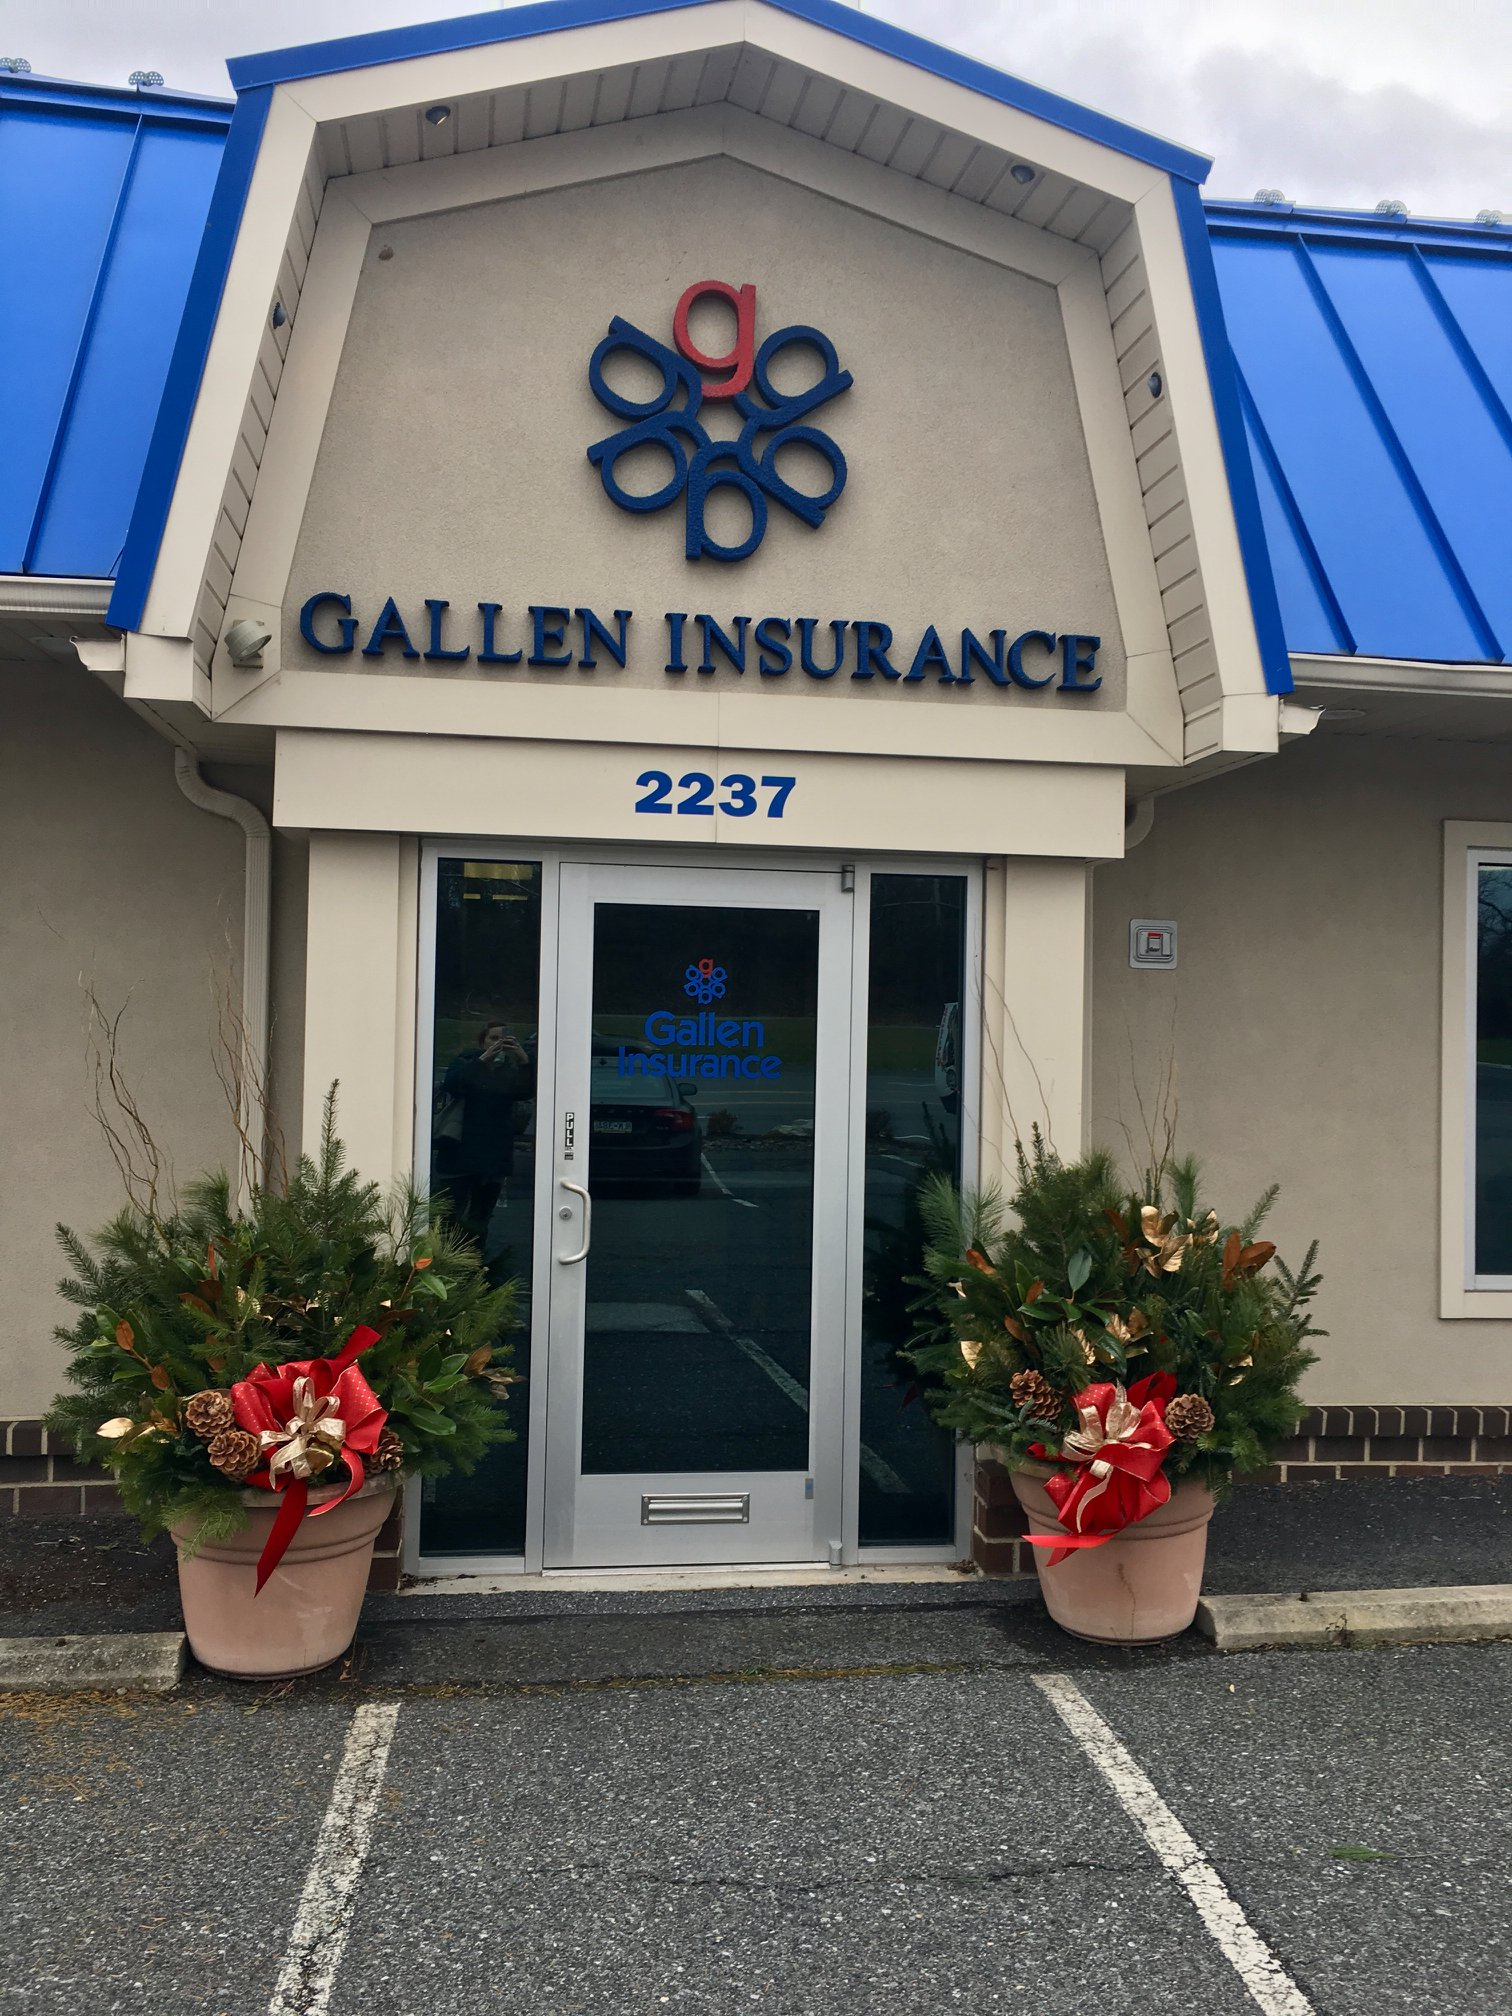 Thank you Stein's Flowers for helping our enterance prepare for the holidays